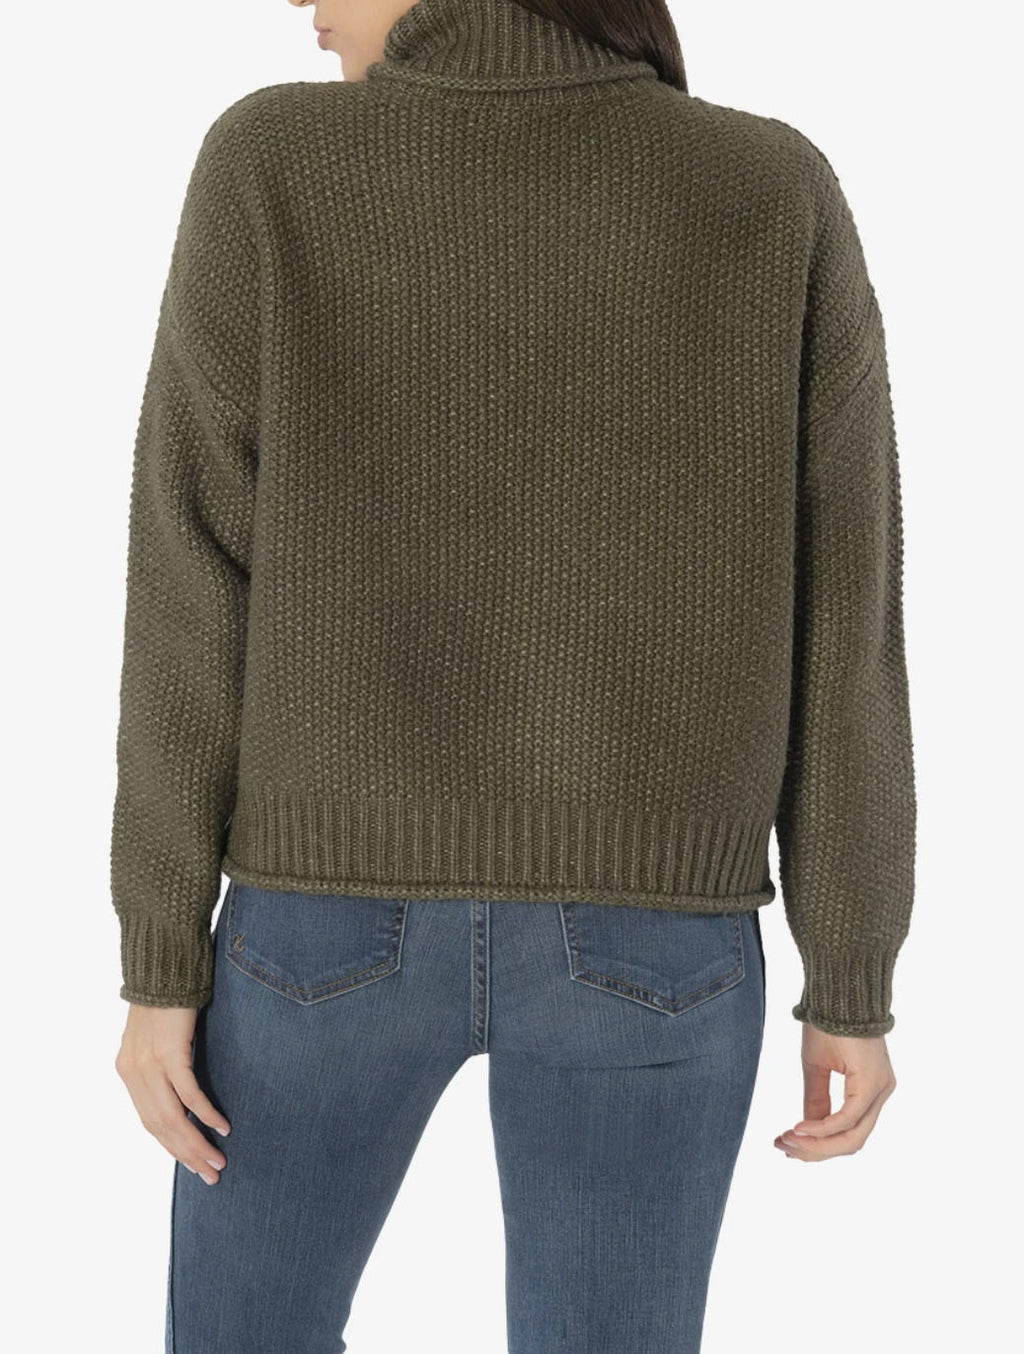 Kut From The Kloth Hailee Sweater in Olive